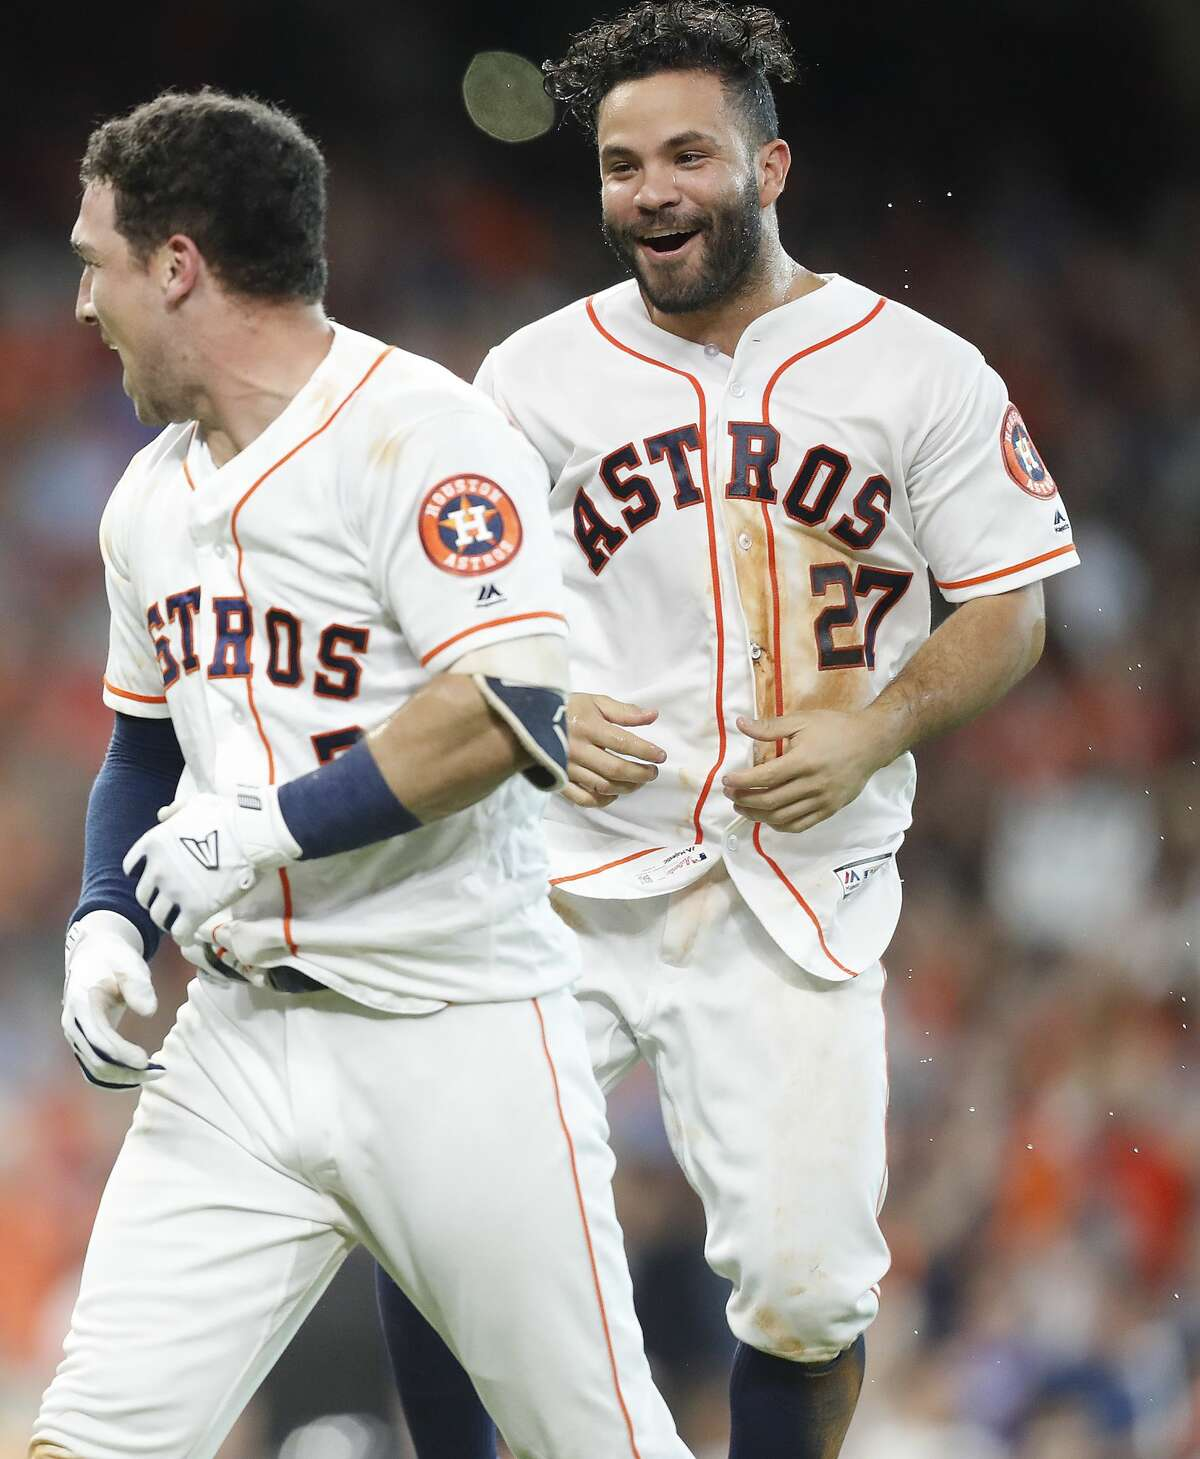 Houston Astros second baseman Jose Altuve (27) celebrates Houston Astros third baseman Alex Bregman (2) two-run walk off home run in the bottom of the ninth inning against Toronto Blue Jays on Wednesday, June 27, 2018 in Houston. Astros won the game 7-6 with a two-run walk off home run. (Elizabeth Conley/Houston Chronicle)